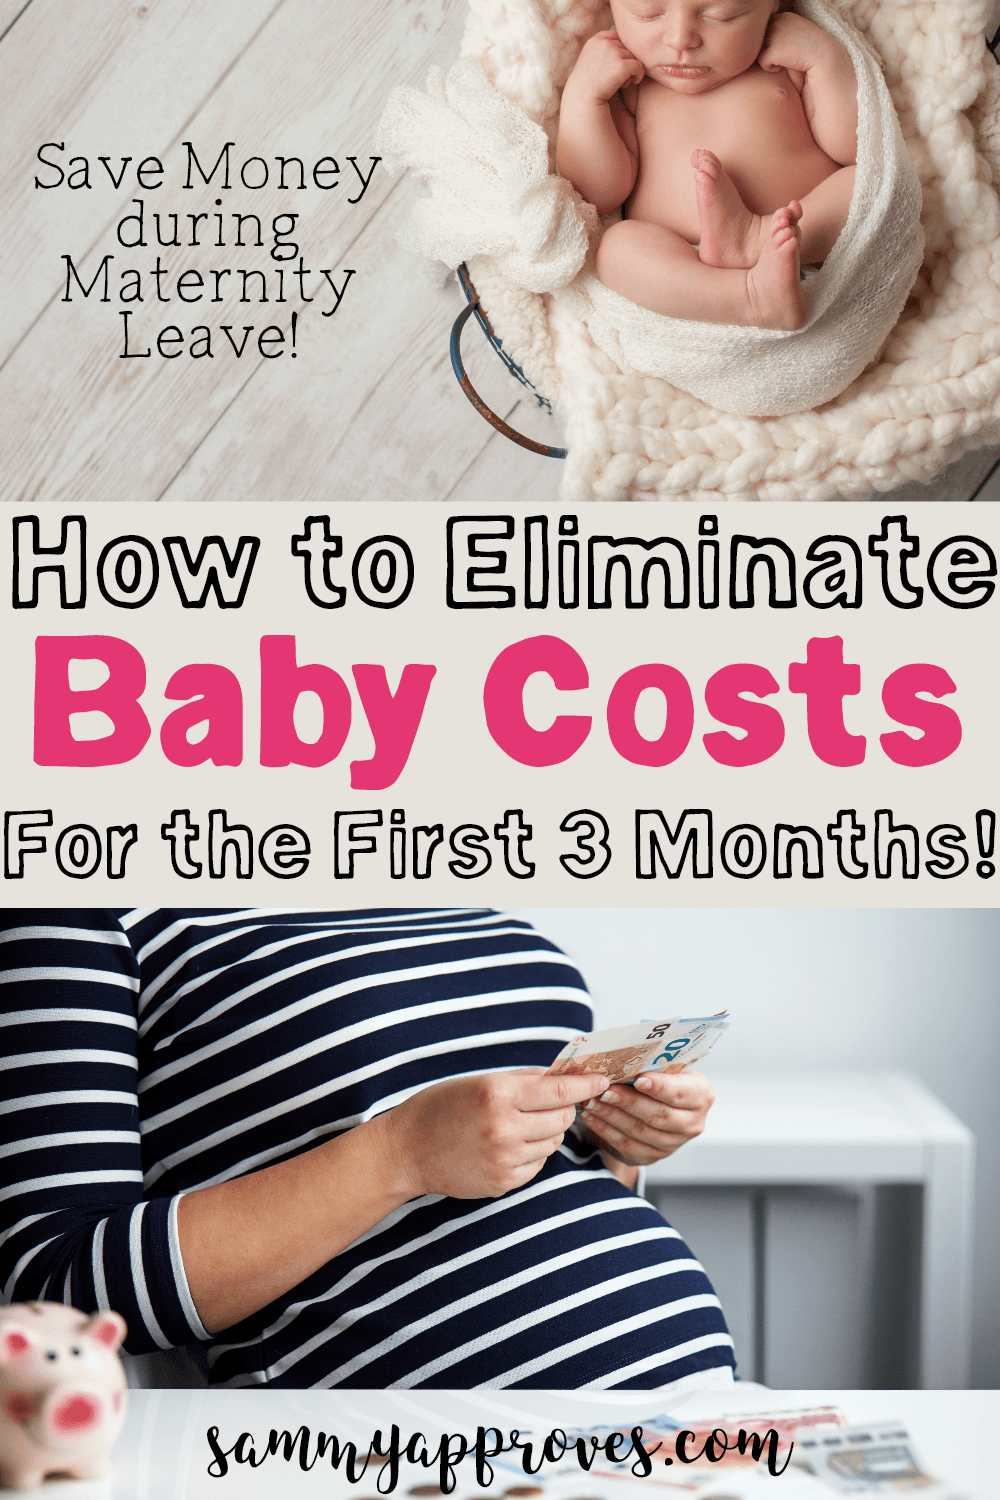 How to Eliminate Baby Costs for the First 3 Months